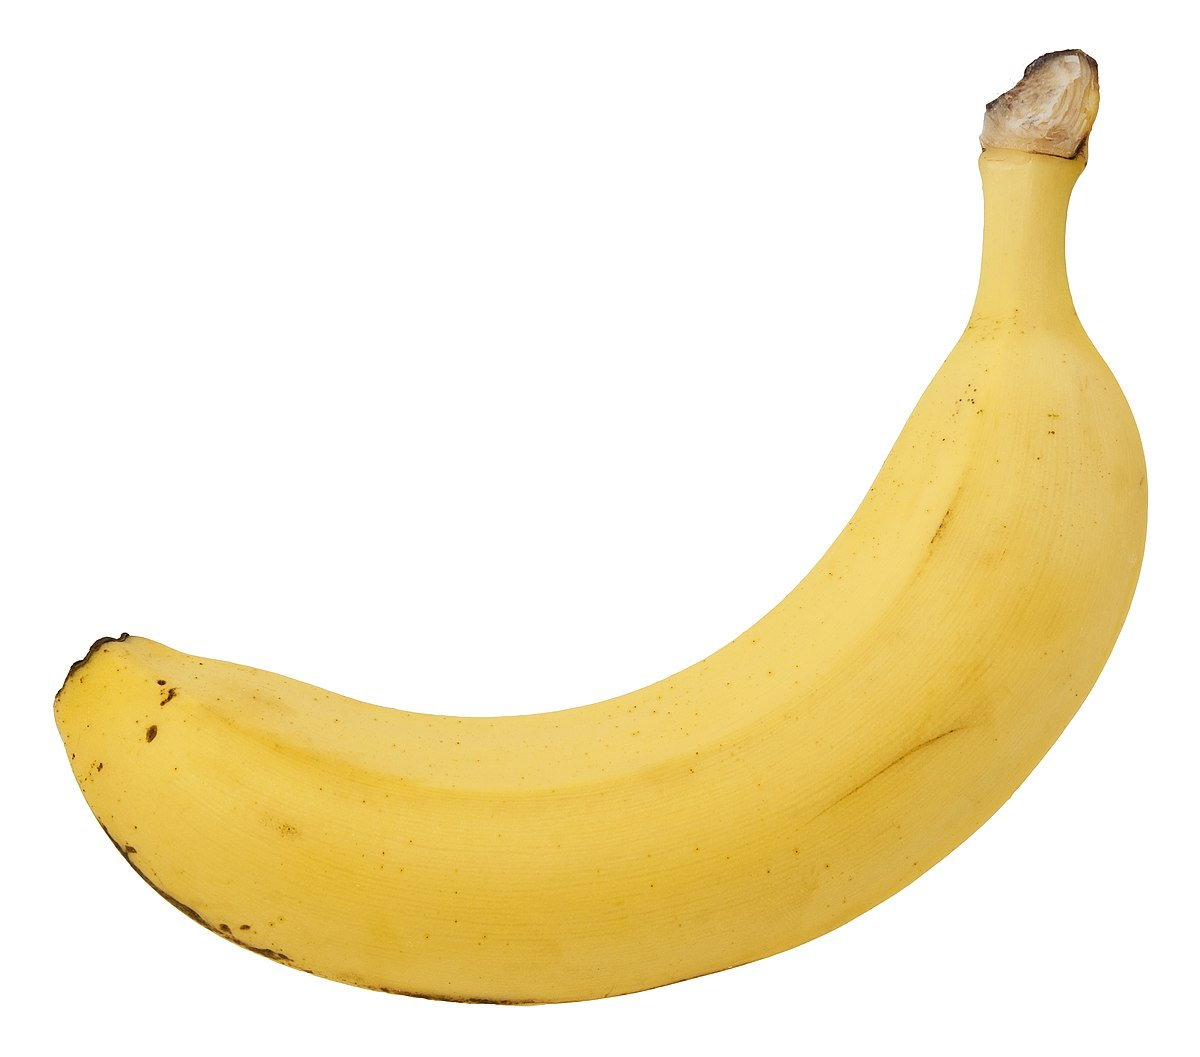 Banana equivalent dose - Wikipedia